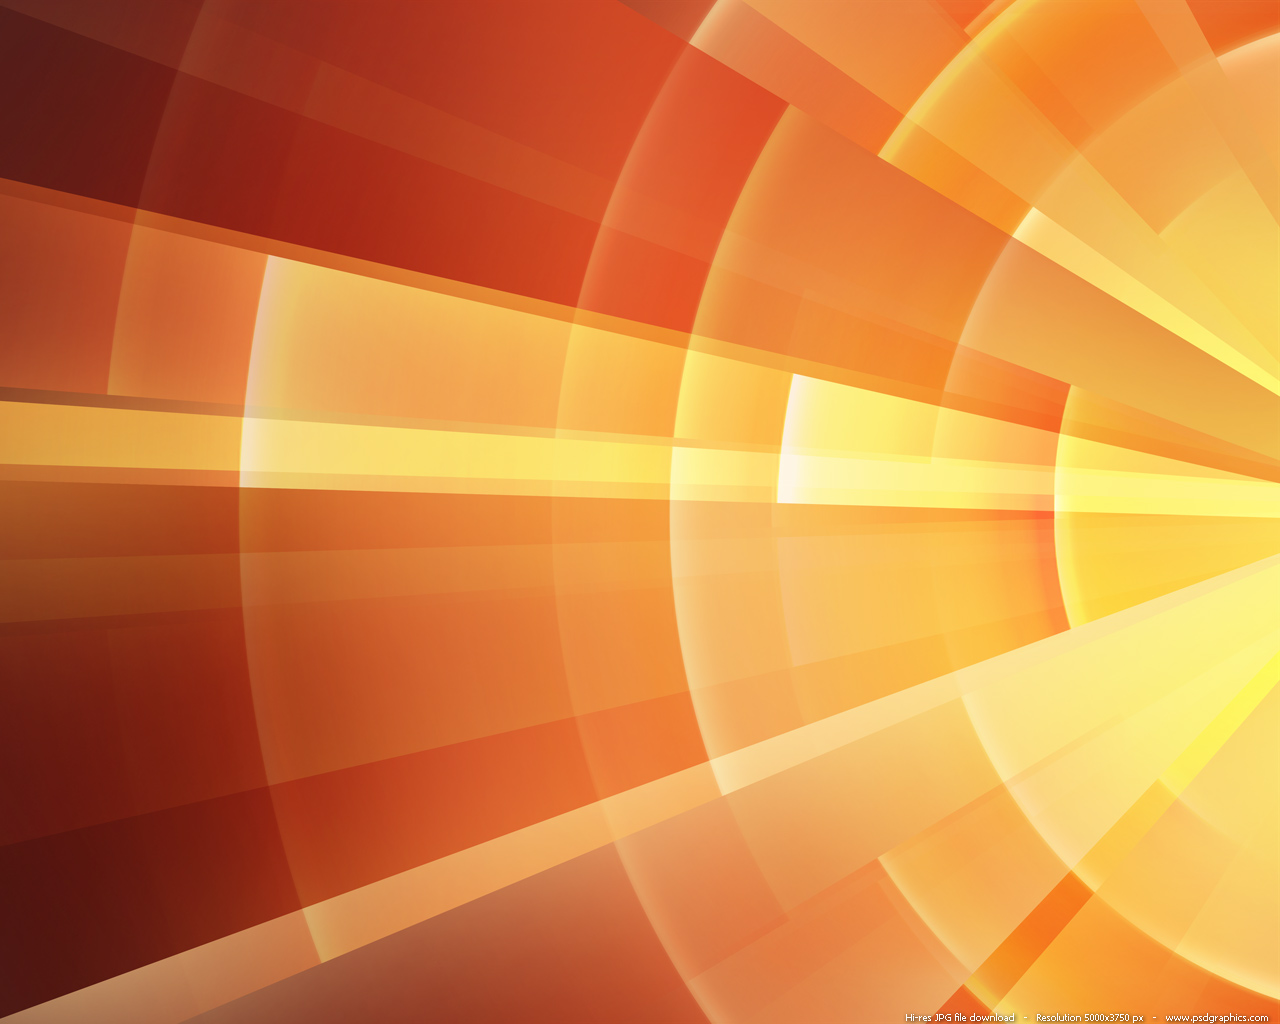 Medium size preview 1280x1024px Orange rings background 1280x1024